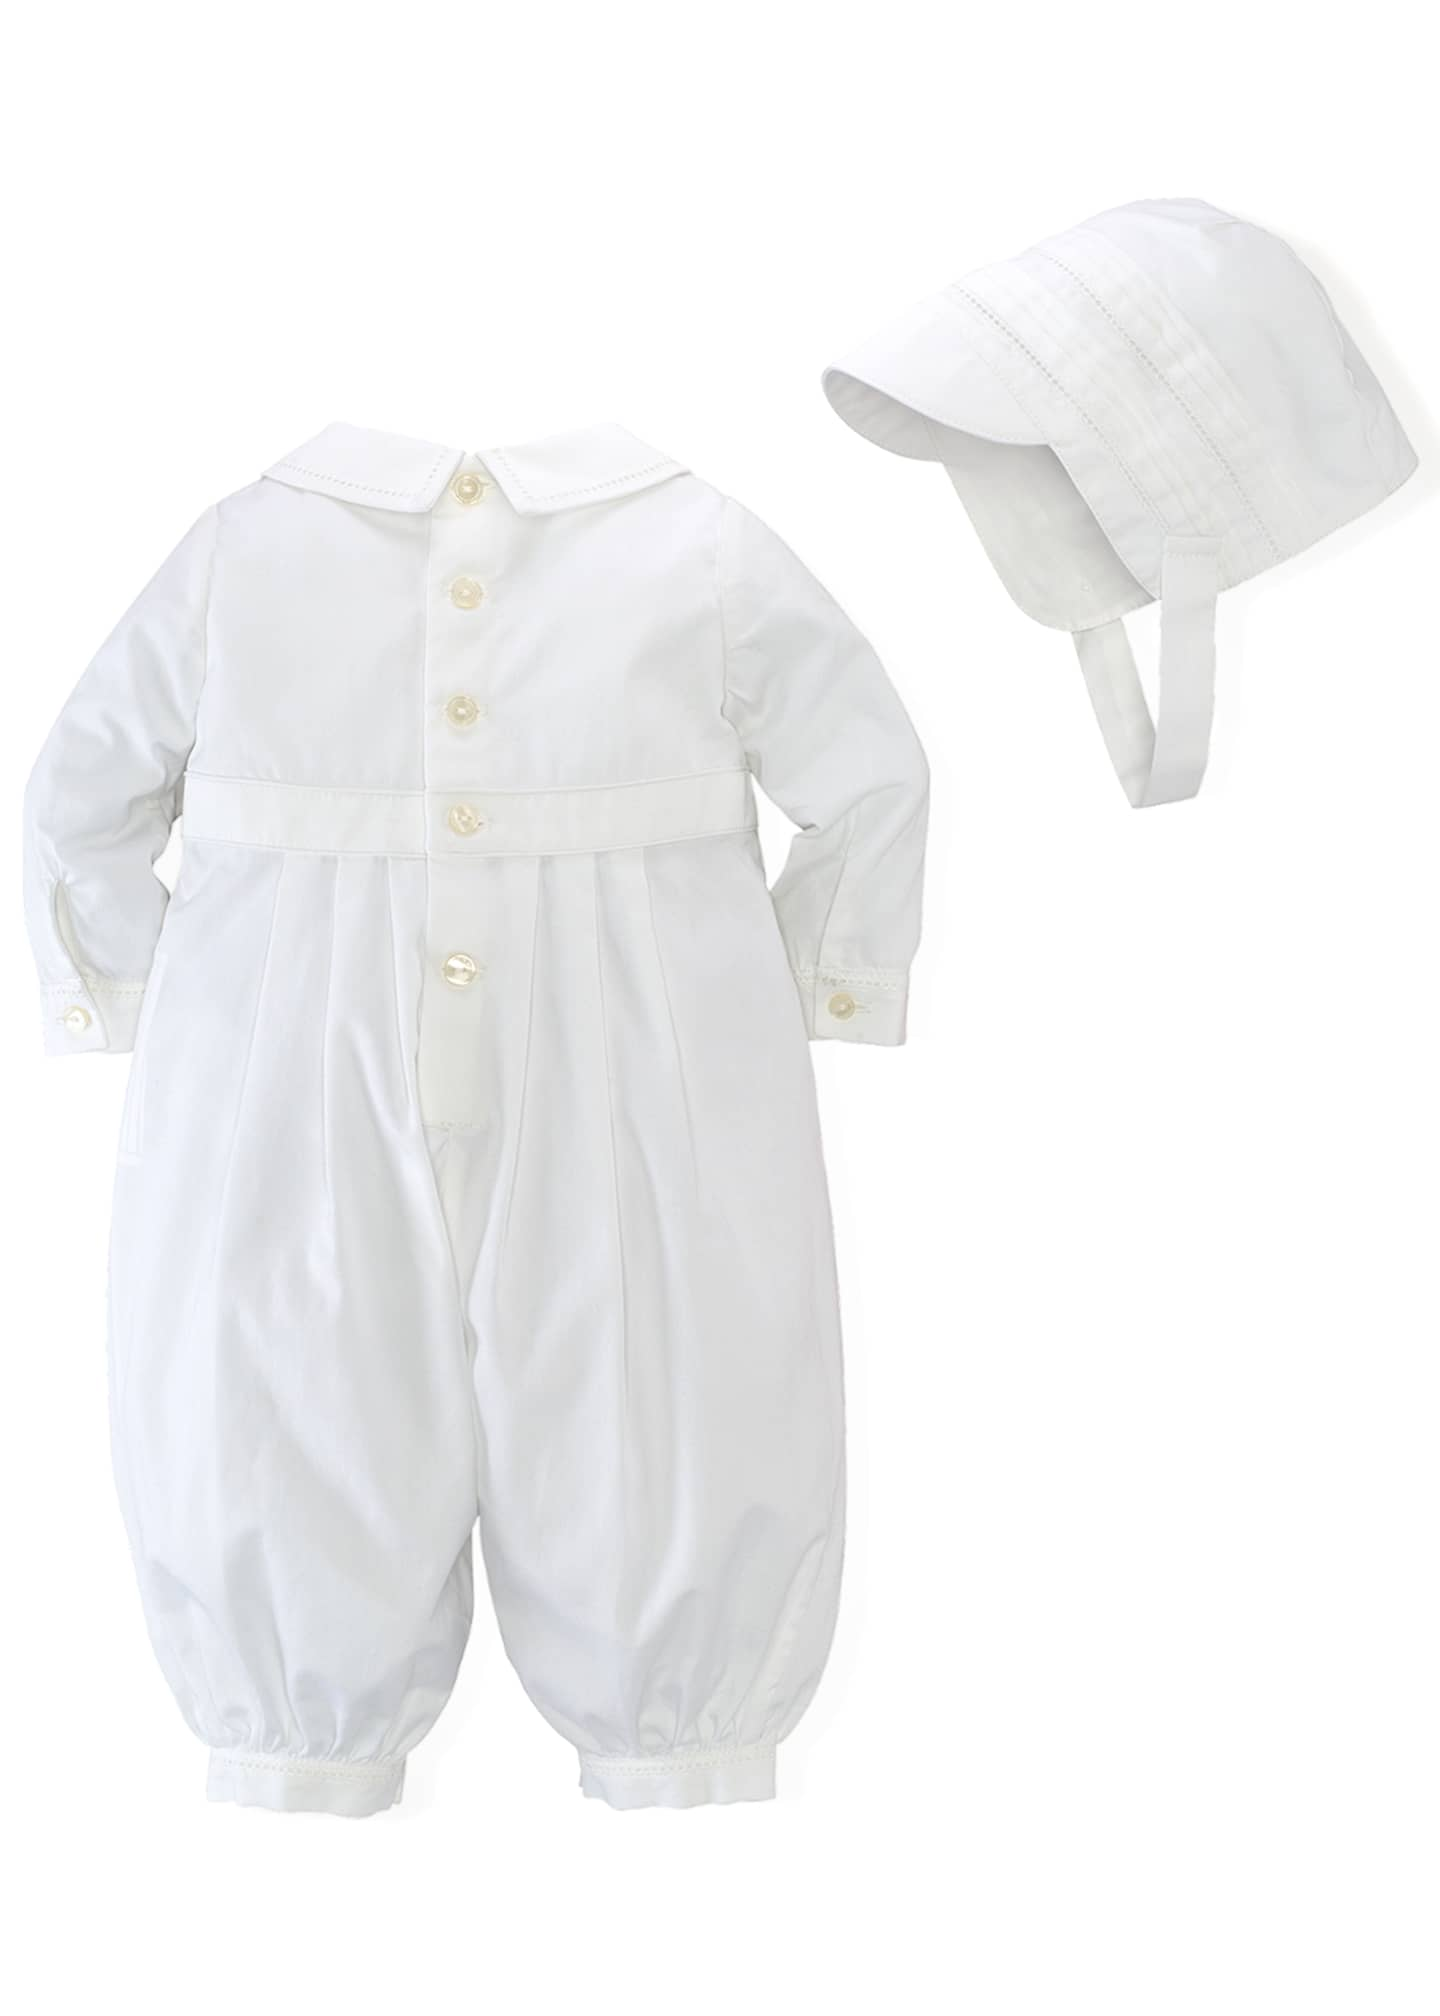 Image 2 of 2: Cotton Special Occasion Set, White, Size 3-9 Months